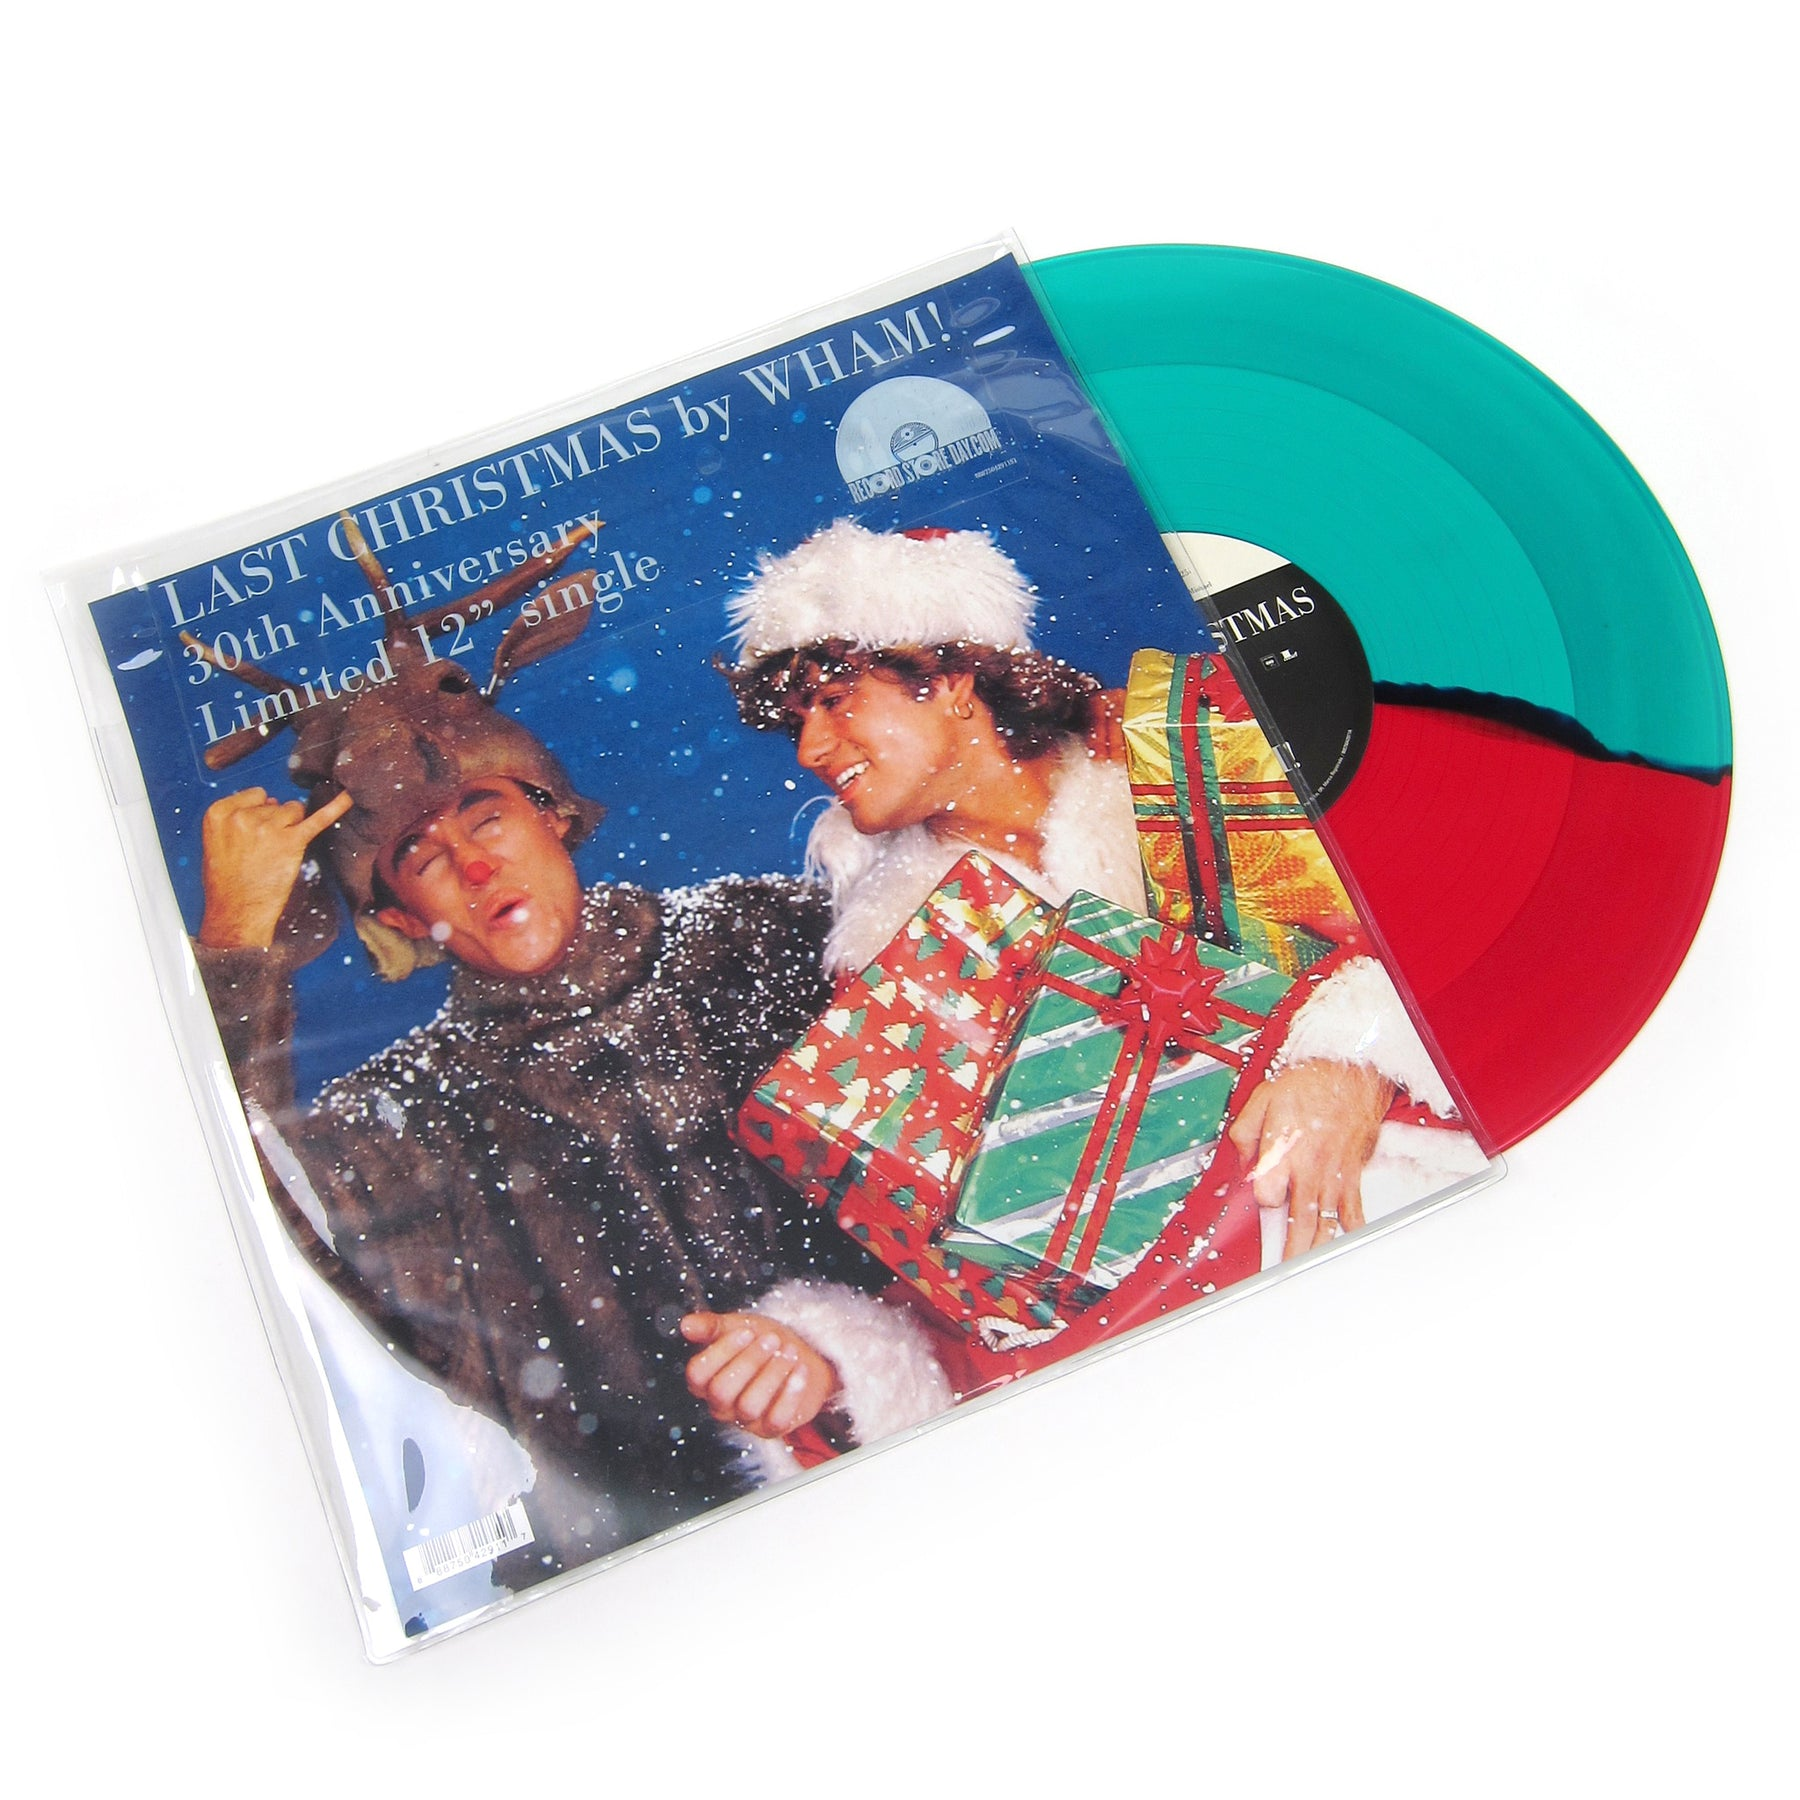 wham last christmas split colored vinyl vinyl 12 record store day - Last Christmas By Wham